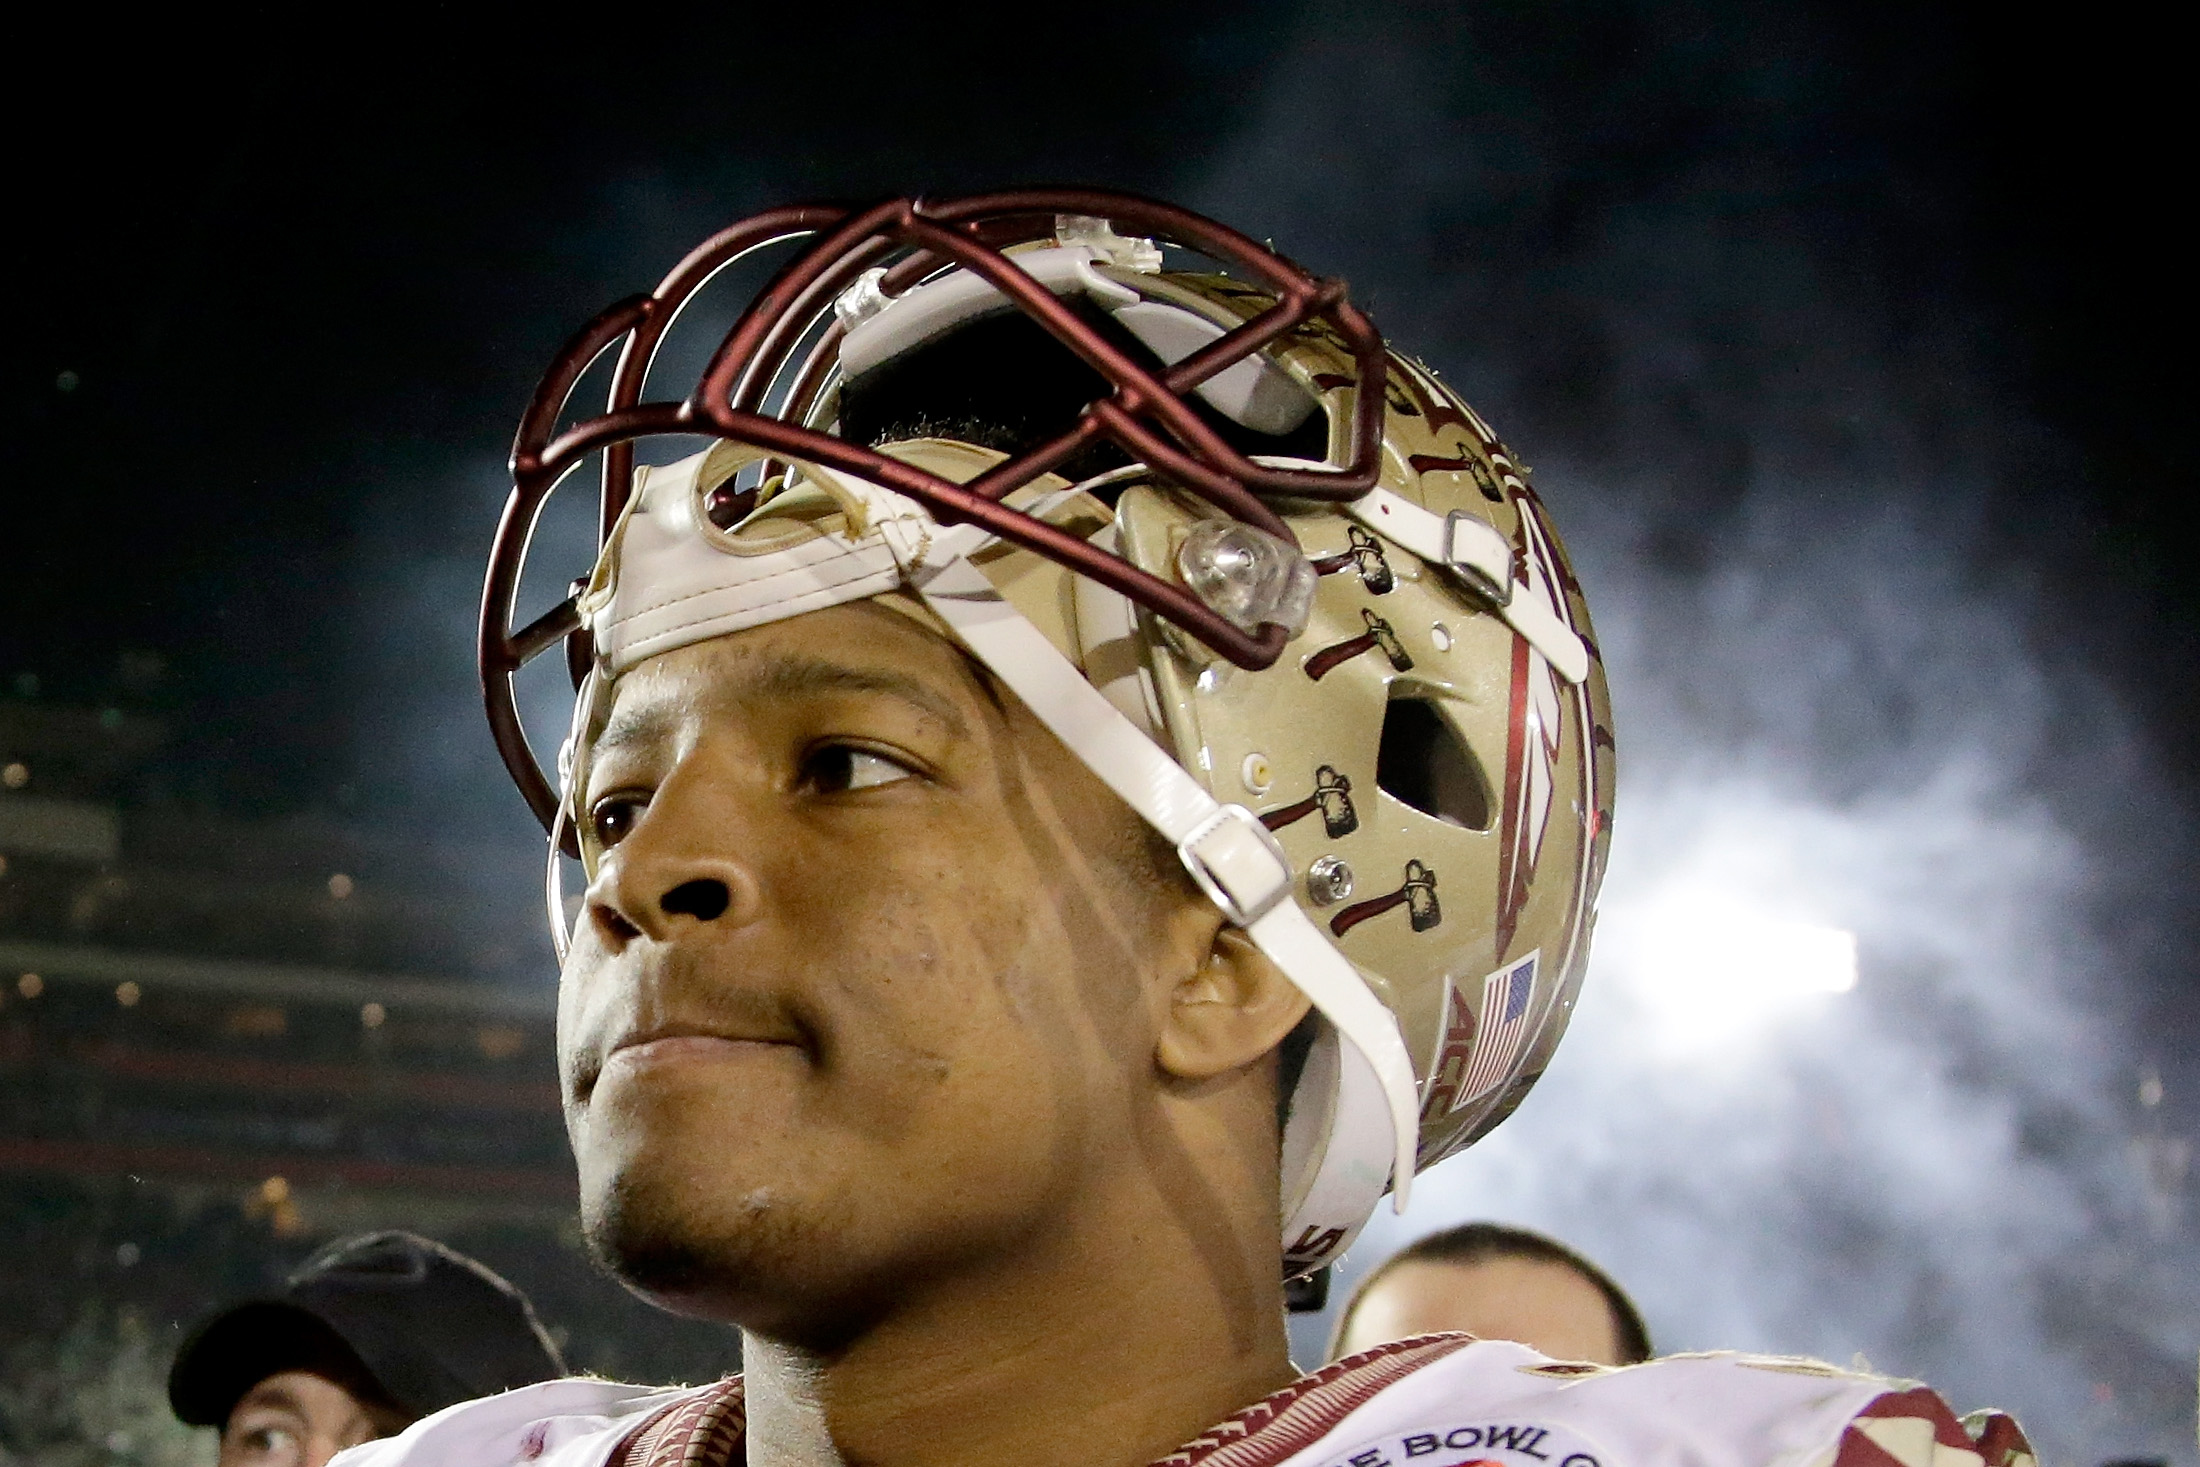 Quarterback Jameis Winston of the Florida State Seminoles reacts after losing 59-20 to the Oregon Ducks at the Rose Bowl on Jan. 1 in California.